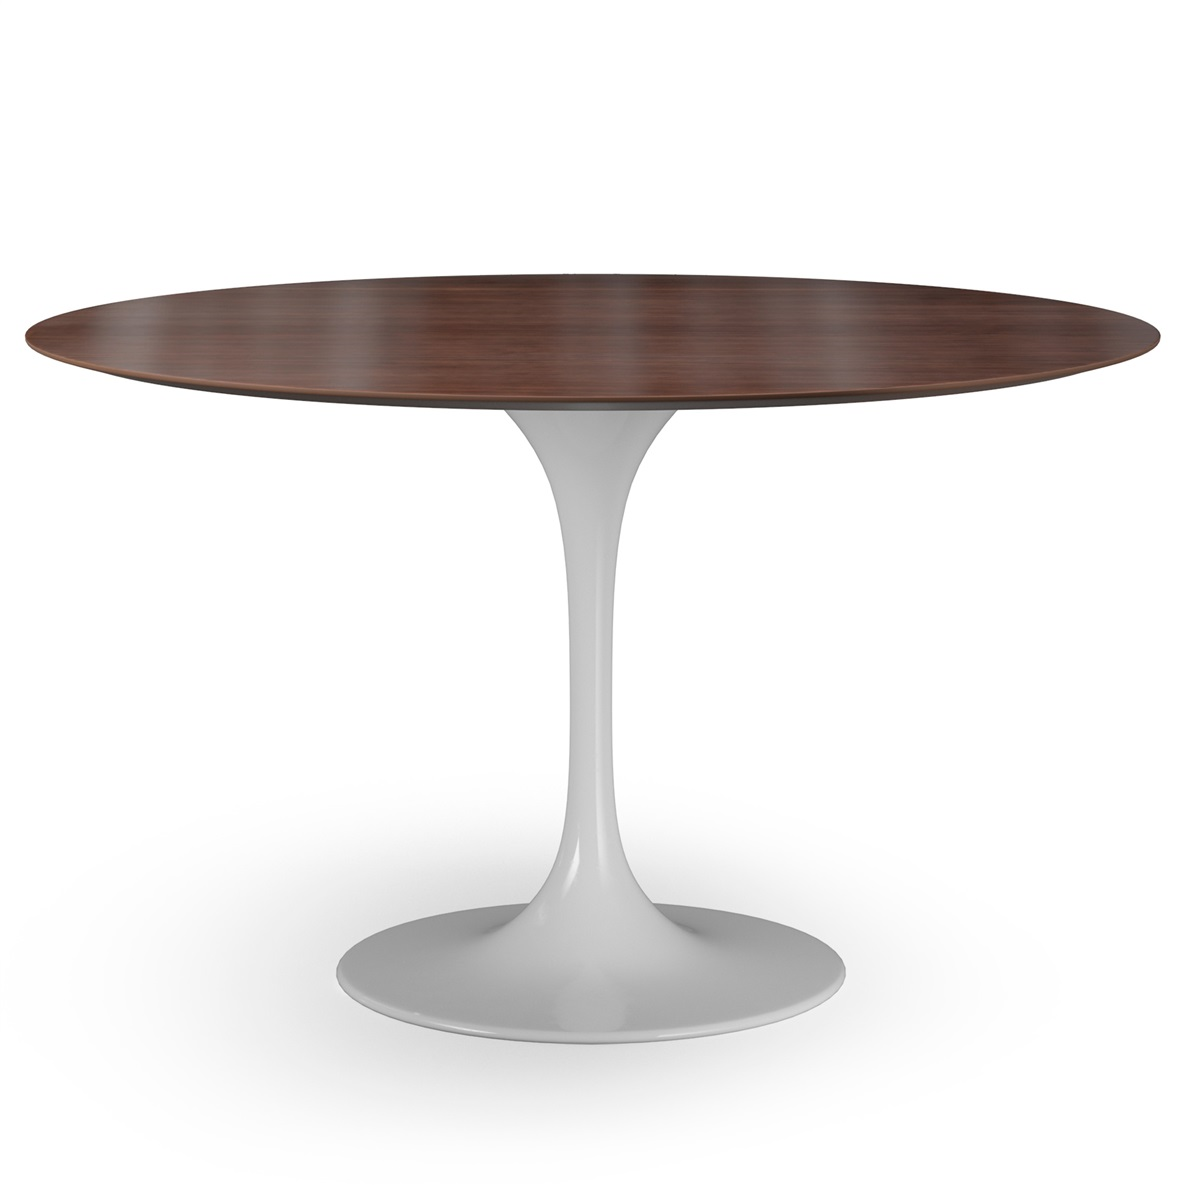 Beau Saarinen Tulip Round Dining Table